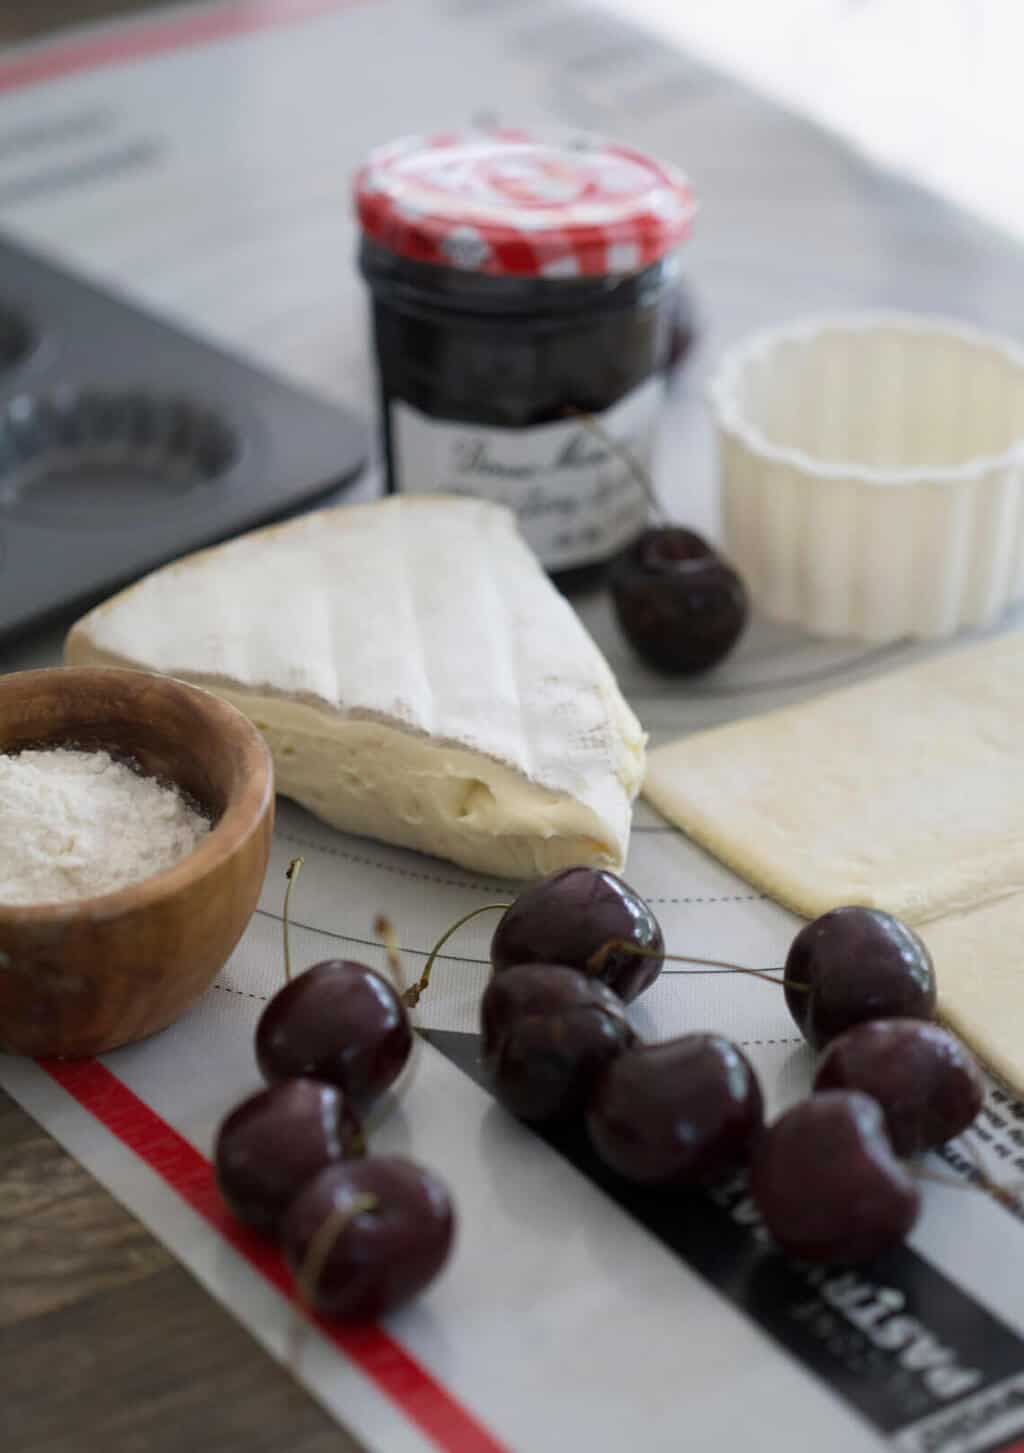 A photo of the ingredients to make brie and cherry bites.